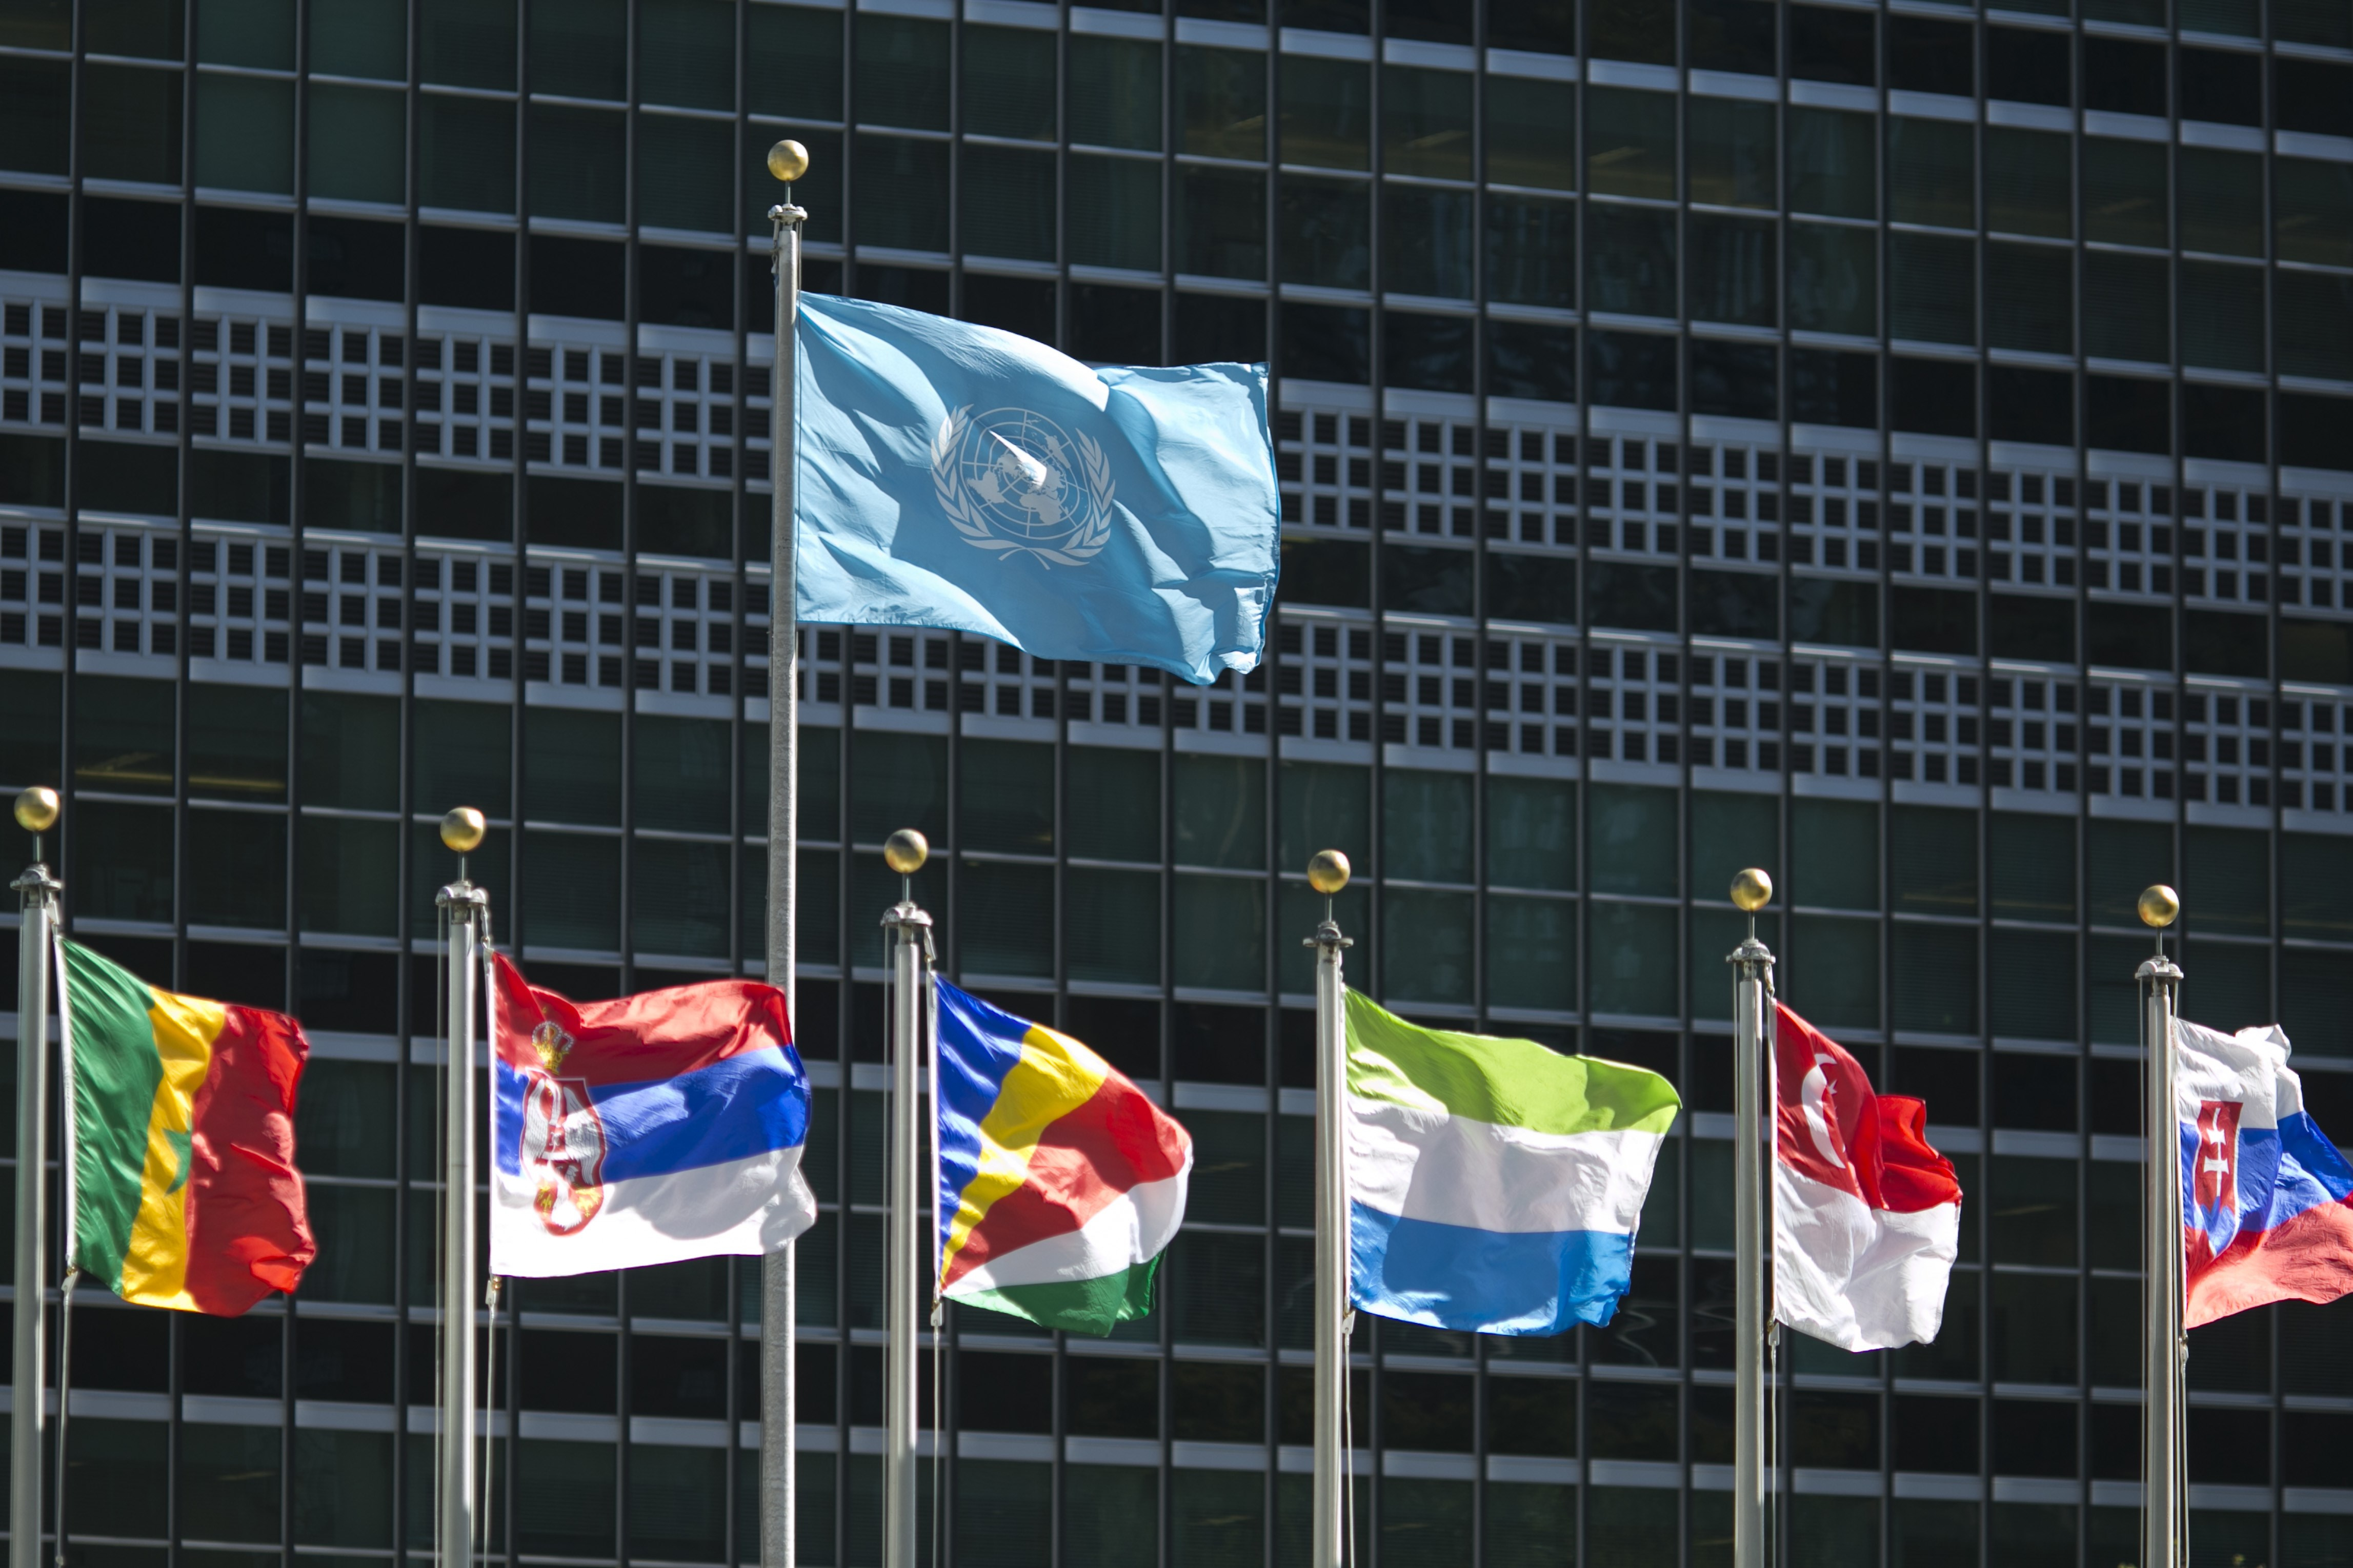 International flags fly in front of the United Nations headquarters on Sept. 24, 2015, before the start of the 70th General Assembly meeting.